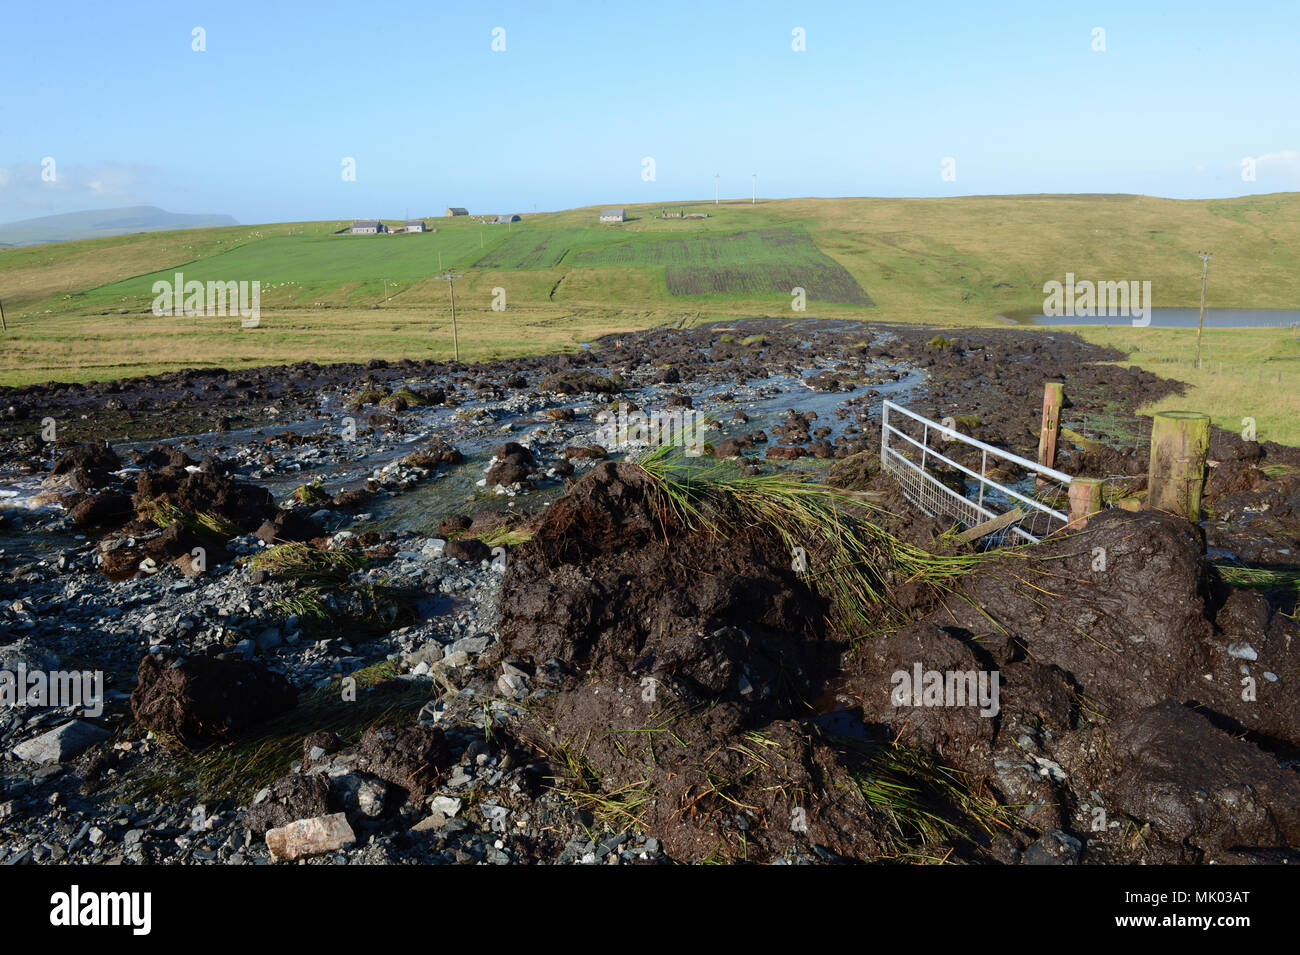 Peat landslide on the hills around a couple of house and settlements Stock Photo